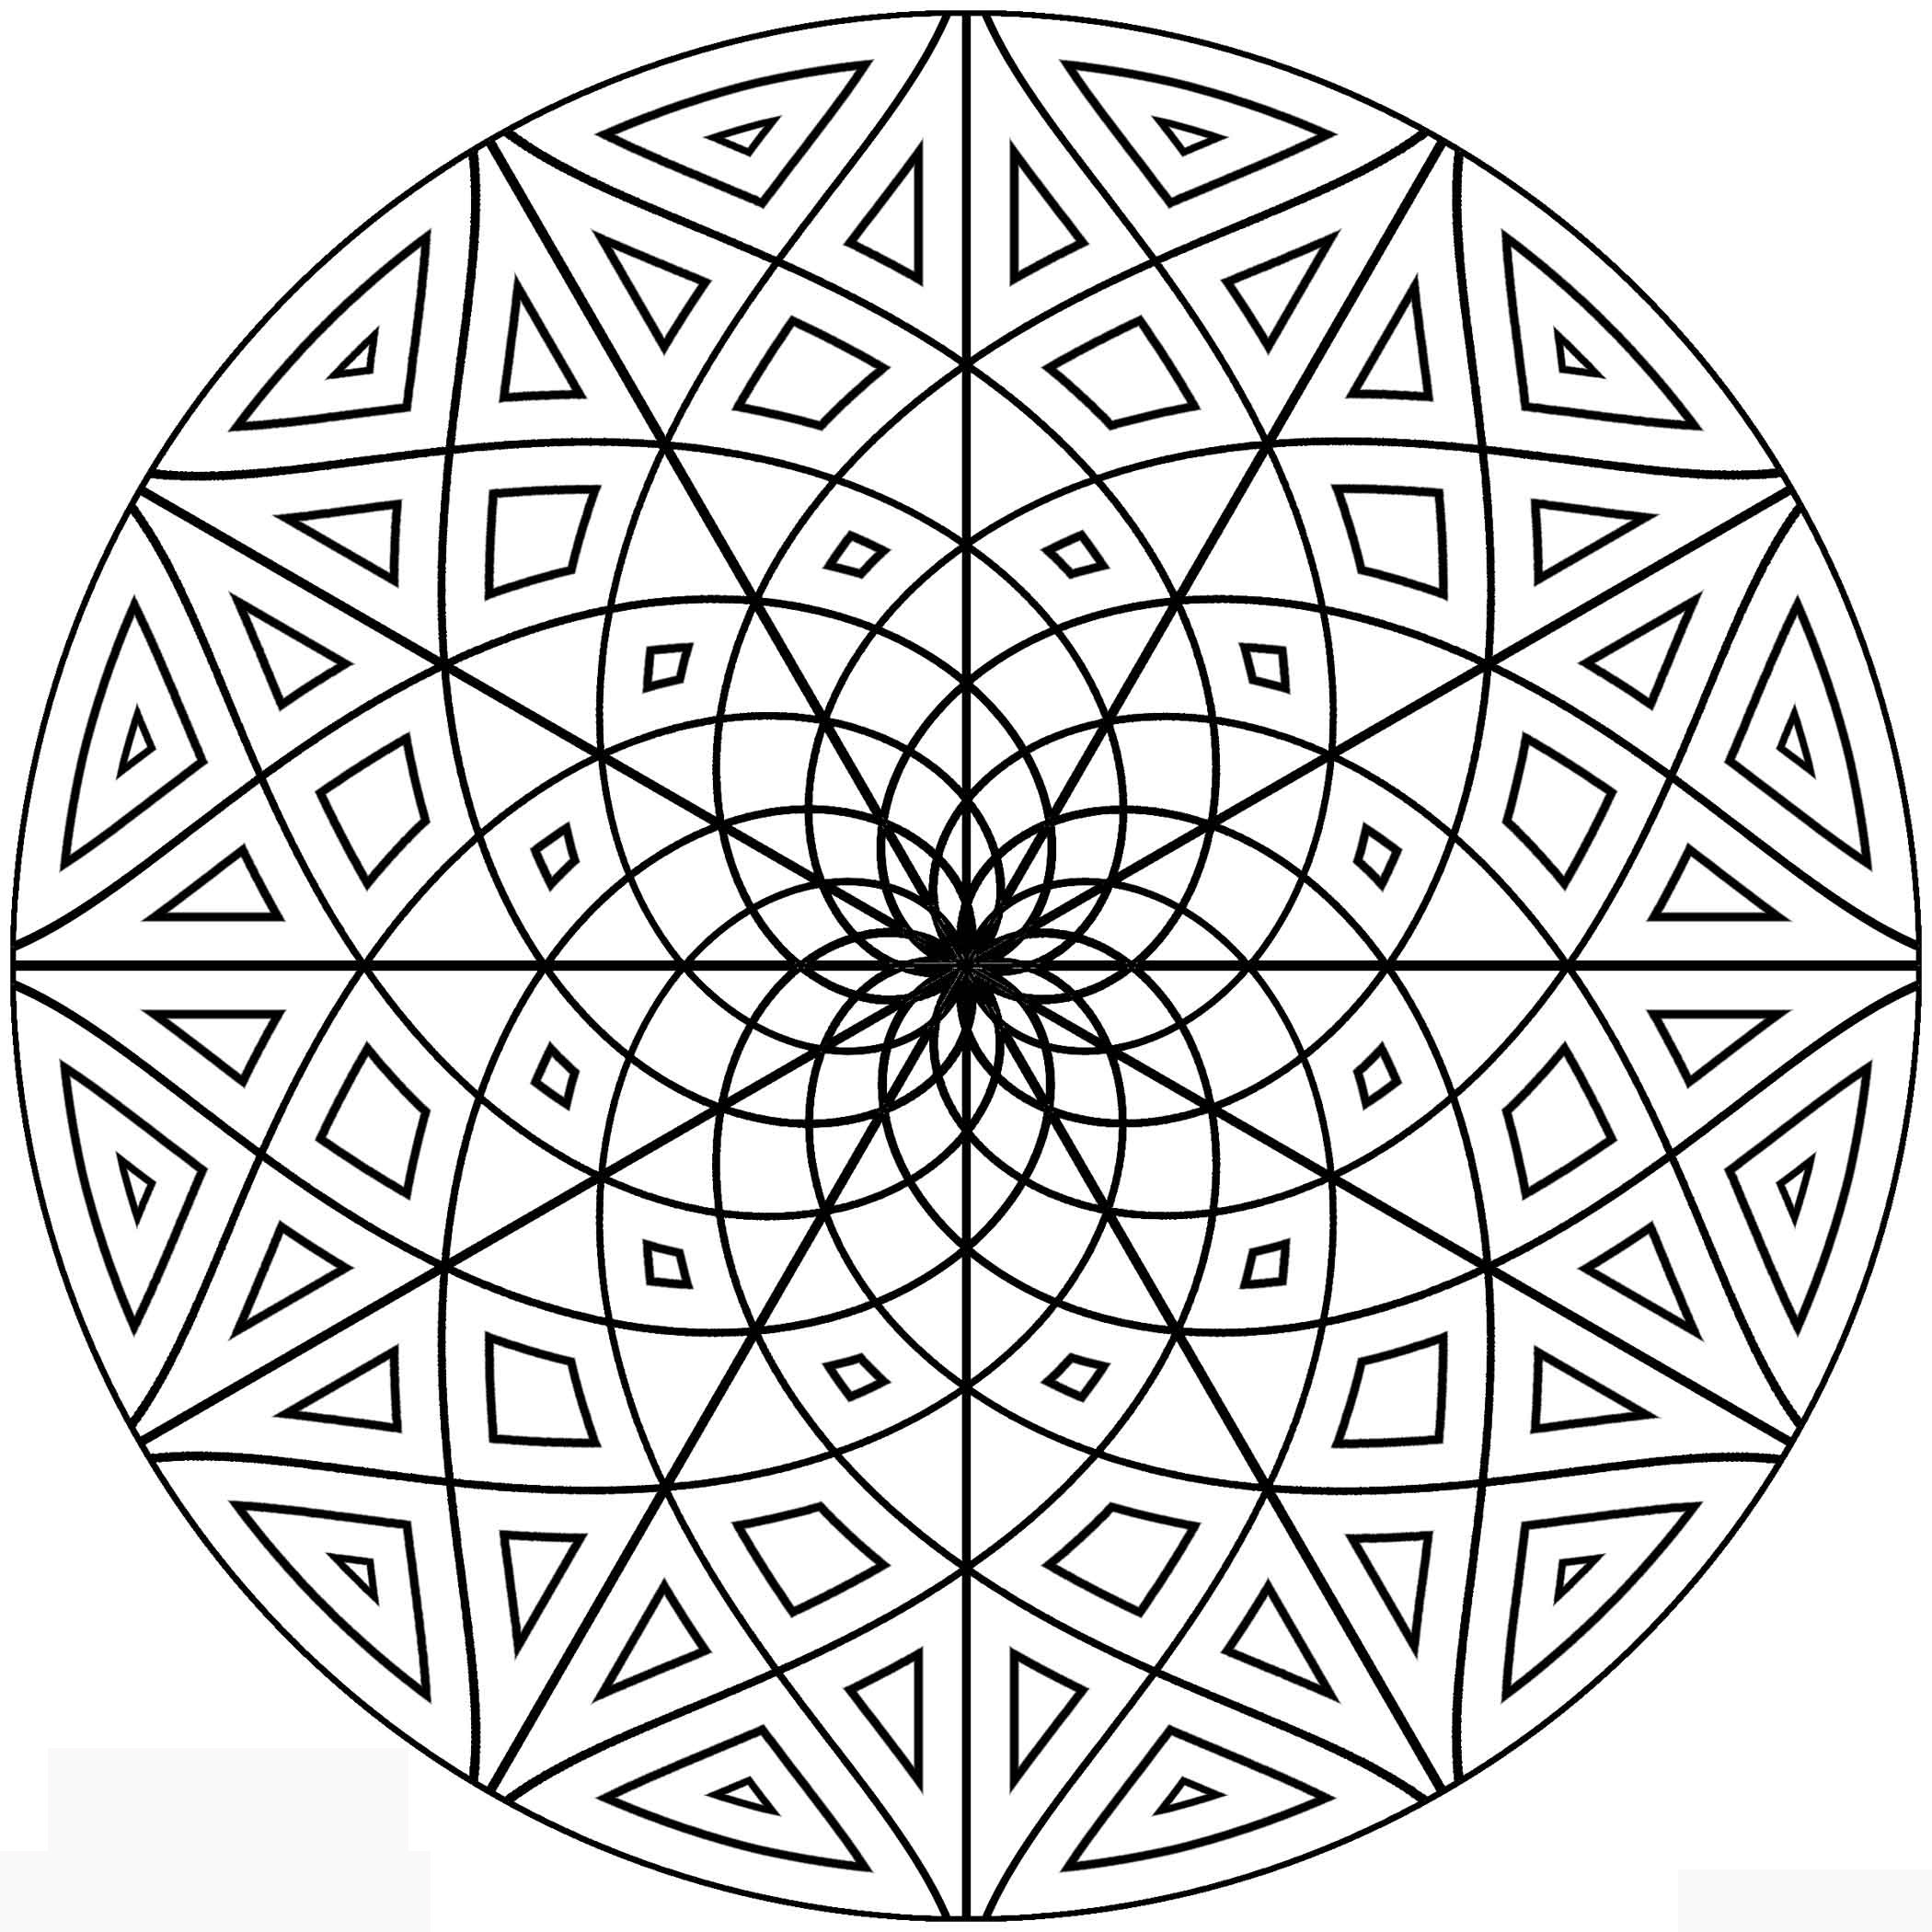 pattern colouring pages to print lotus pattern coloring page free printable coloring pages to pages pattern print colouring